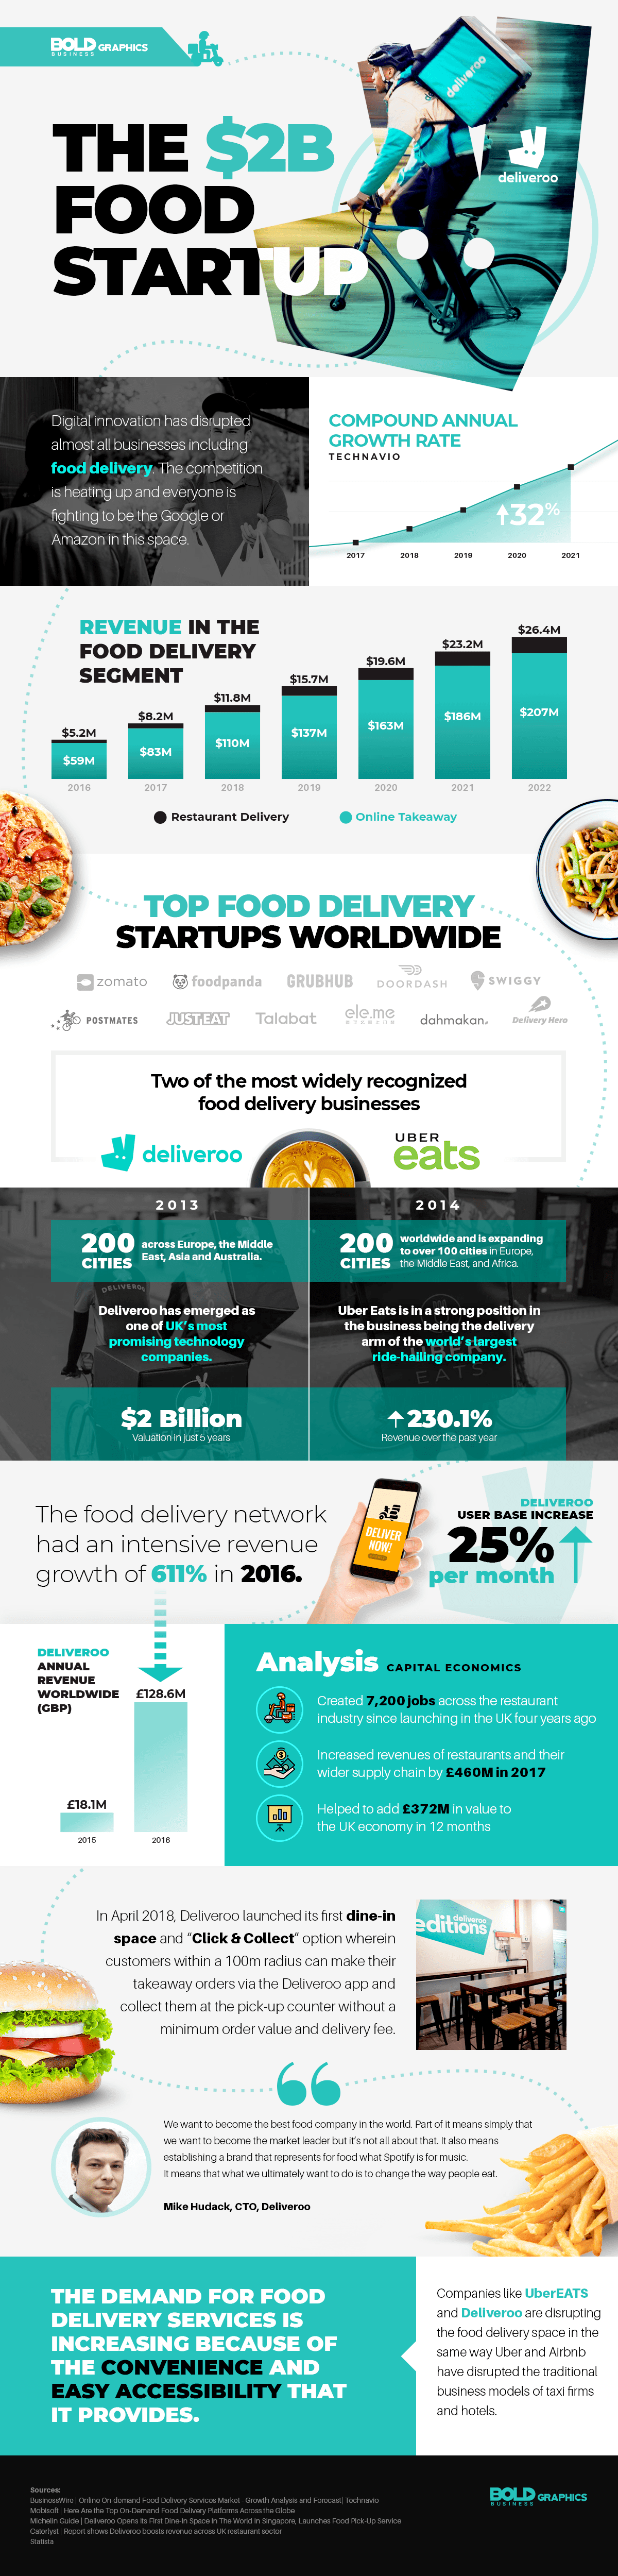 food delivery app,deliveroo vs ubereats,food delivery companies,food delivery data,food delivery statistics,deliveroo vs ubereats price,deliveroo vs ubereats vs foodpanda,deliveroo or ubereats,deliveroo valuation,deliveroo market share,ubereats vs deliveroo infographic